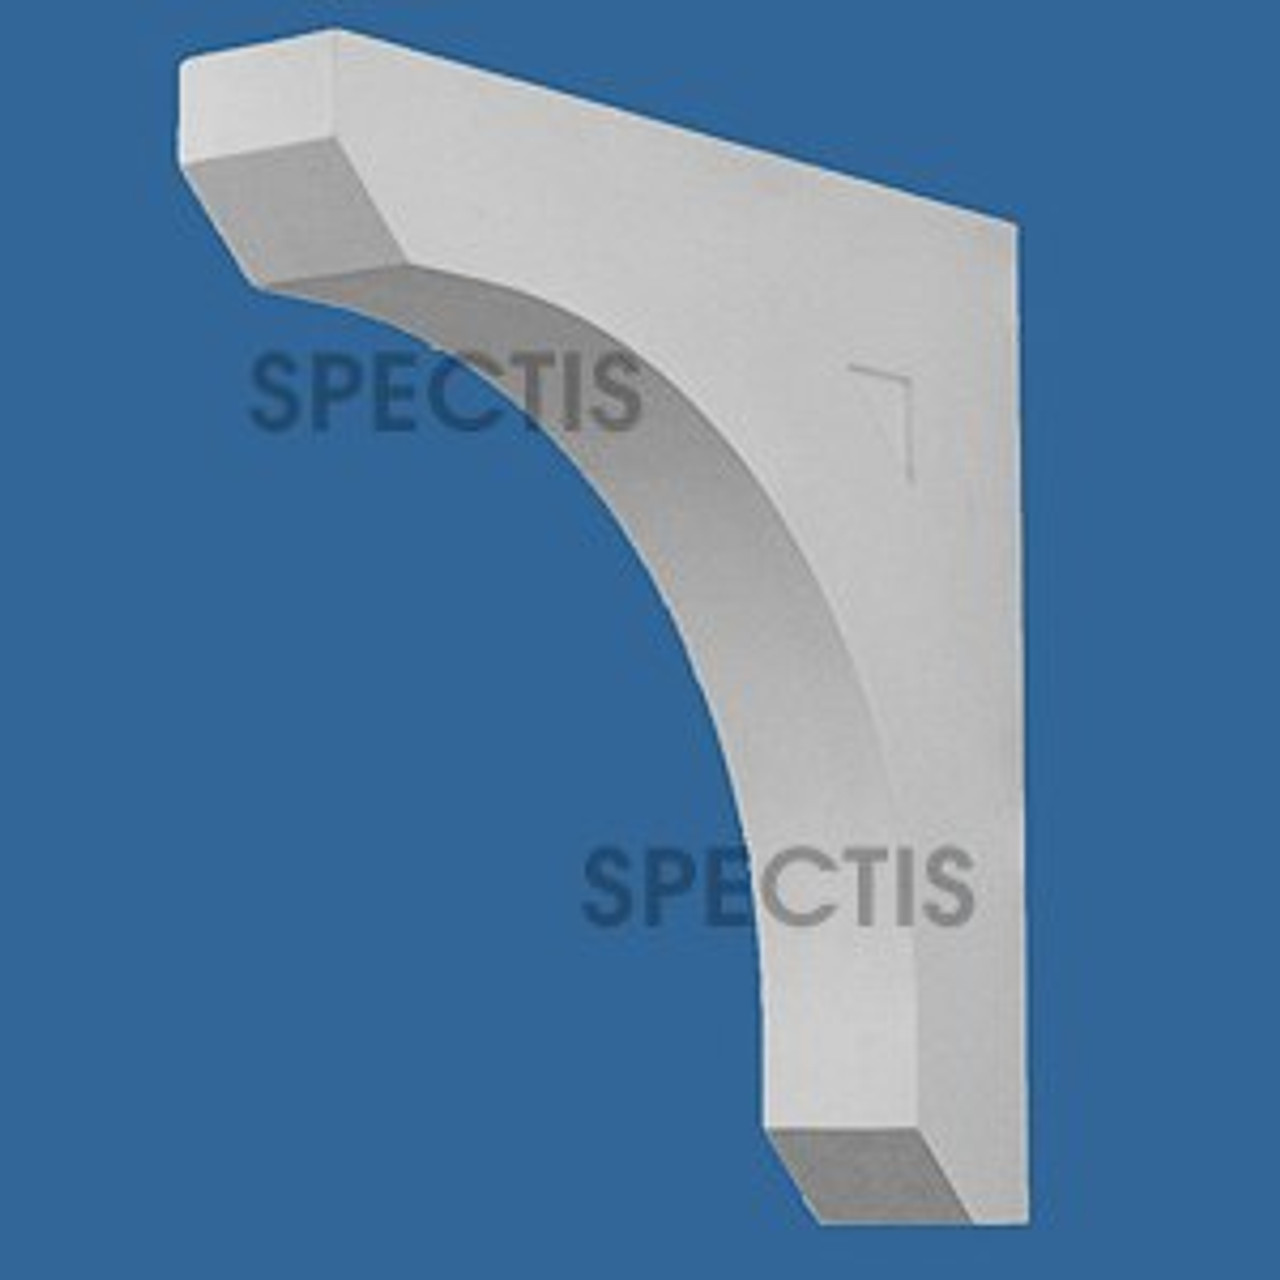 "BL2995 Spectis Eave Block or Bracket 4""W x 21.5""H x 21.5"" Projection"